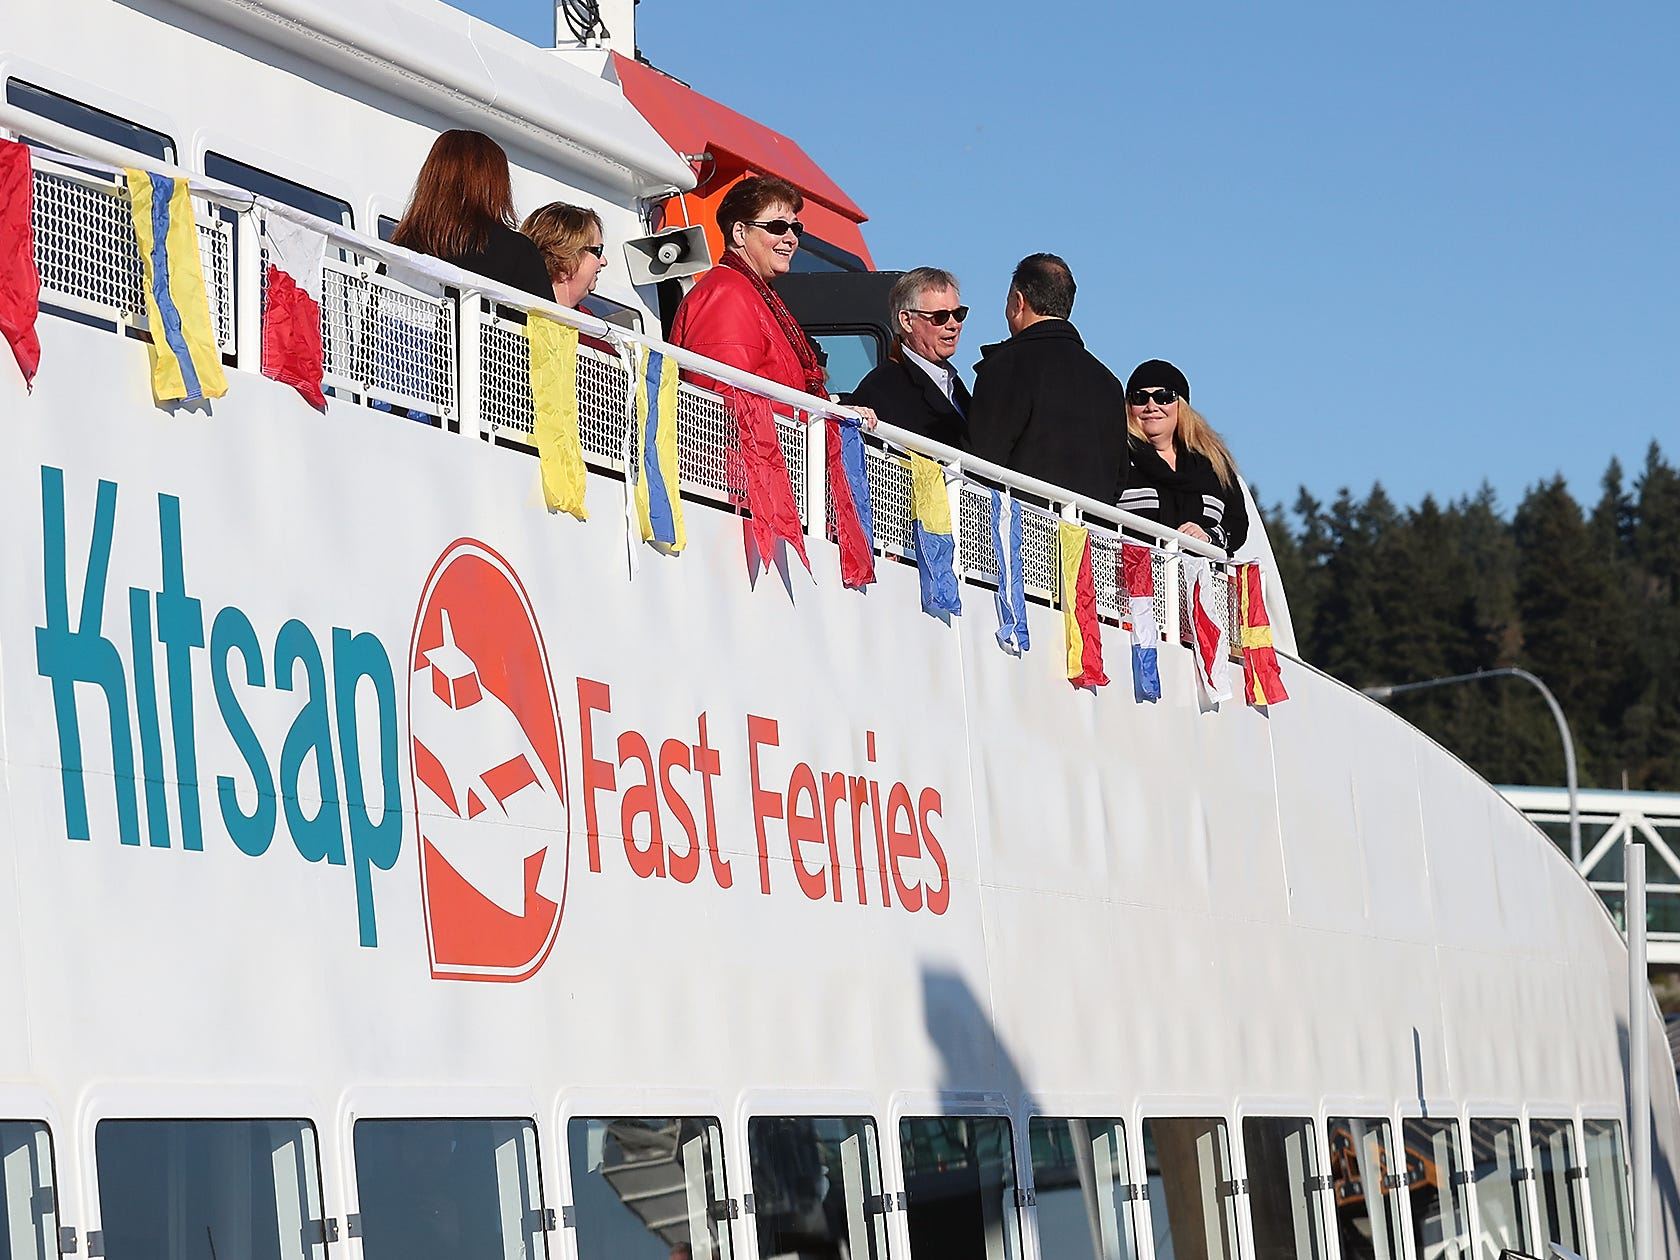 Riders take in the view from atop the M/V Finest as the ferry prepares to leave the dock during the Grand Opening event at the Port of Kingston for Kitsap Transit's new fast-ferry service between Kingston and Seattle on Monday, November 19, 2018.